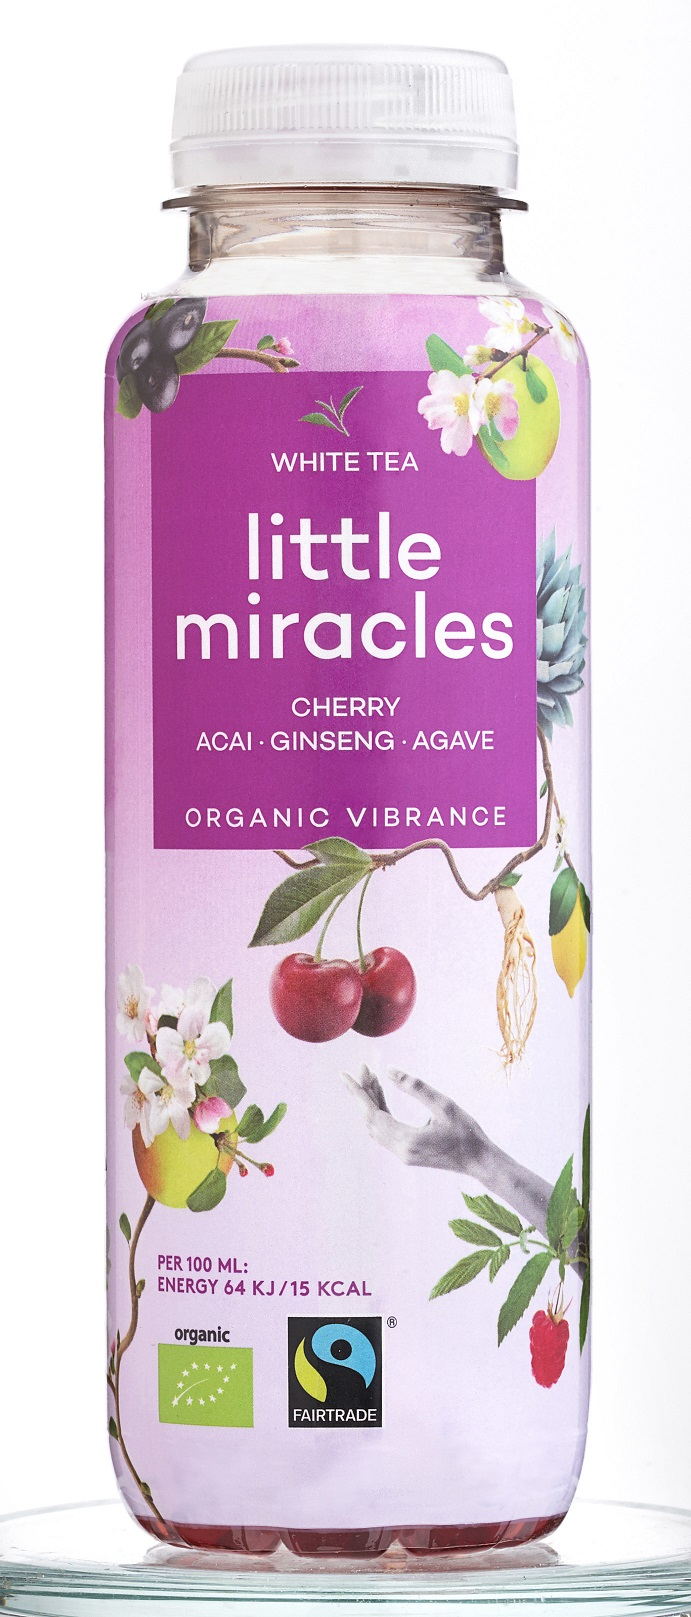 Little Miracles White Tea Cherry